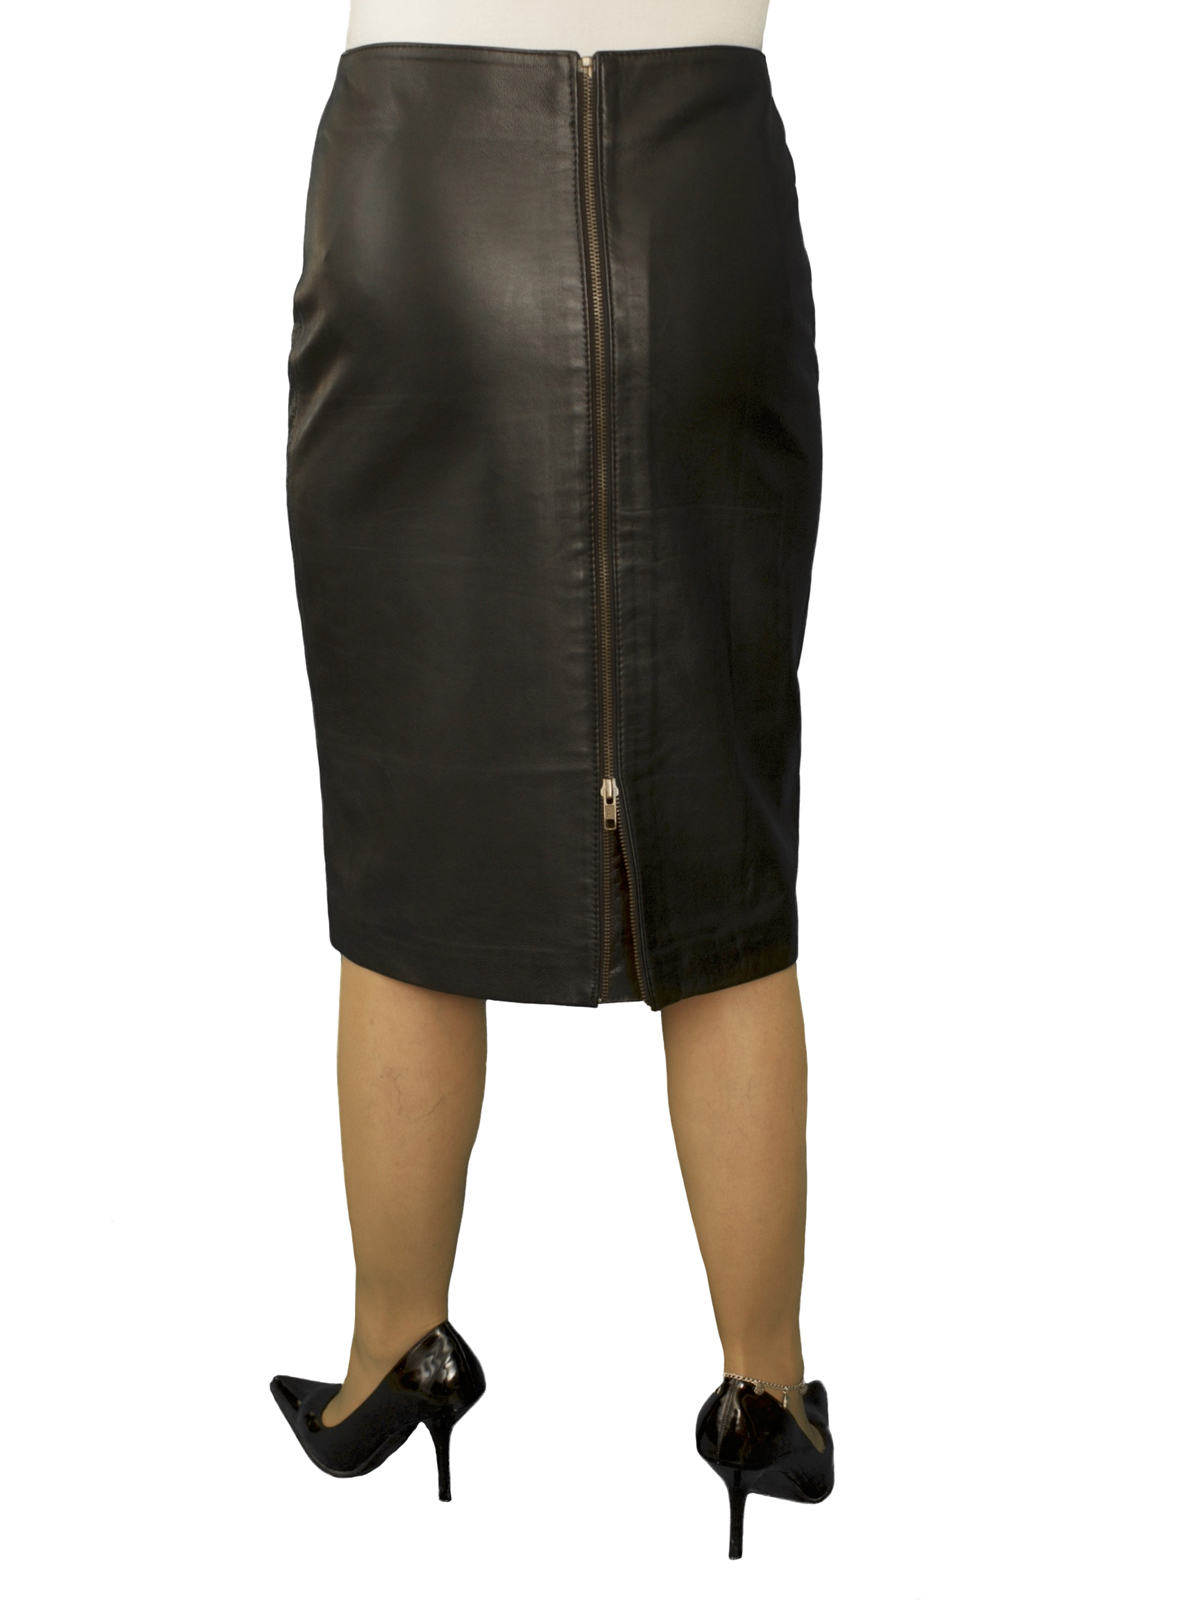 29bdb98a085 Black Leather Knee Length Pencil Skirt with full rear zip (23 ...